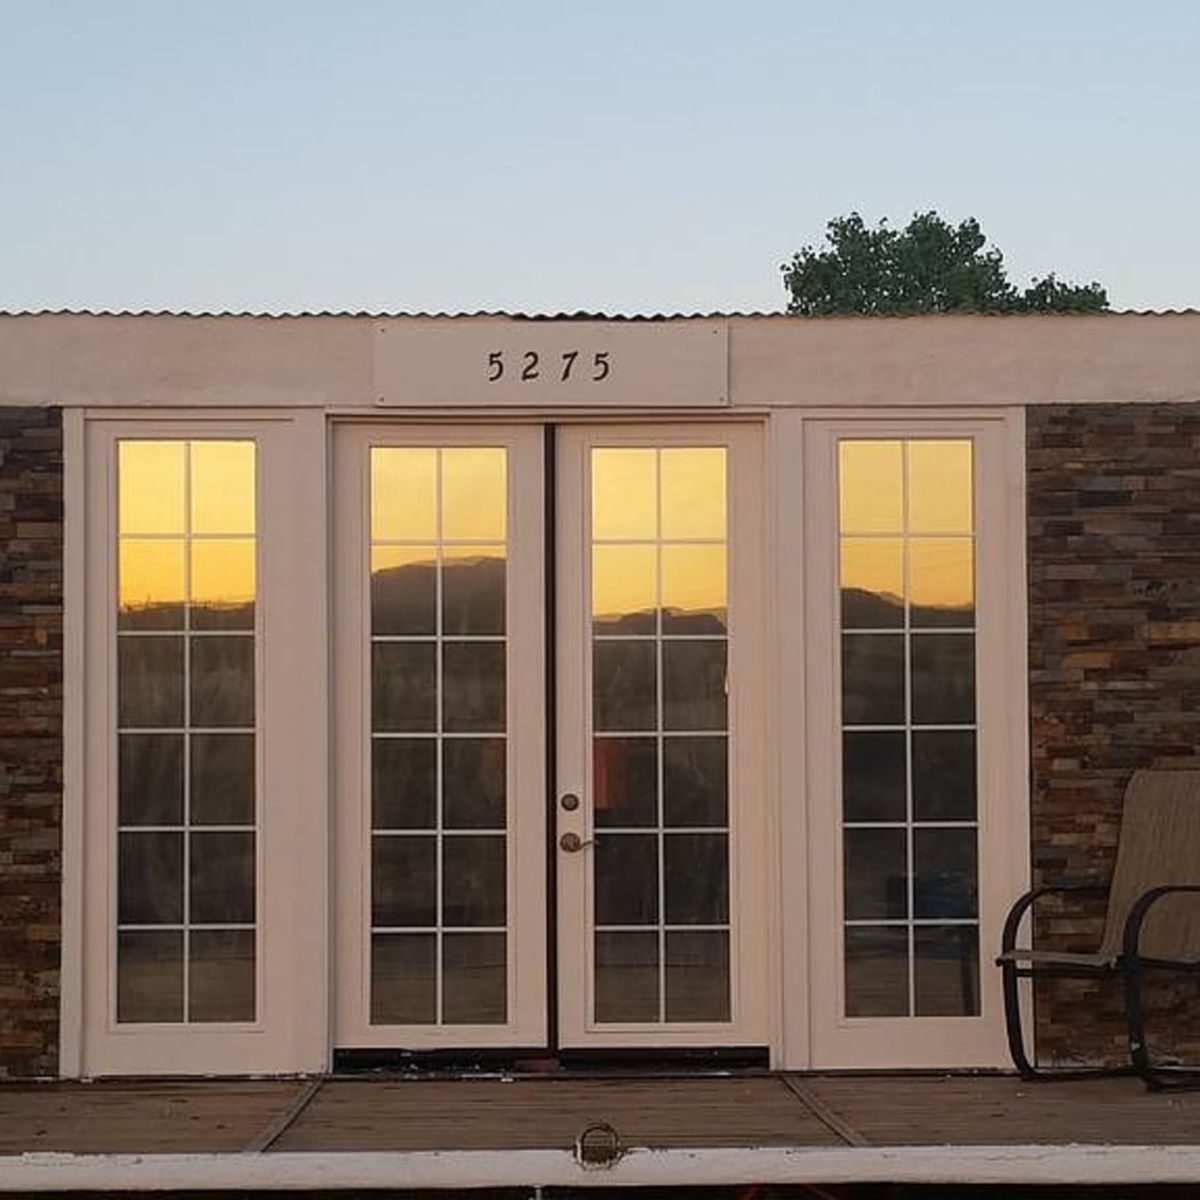 Salt Lake City Utah Houses: Shipping Container Tiny Houses